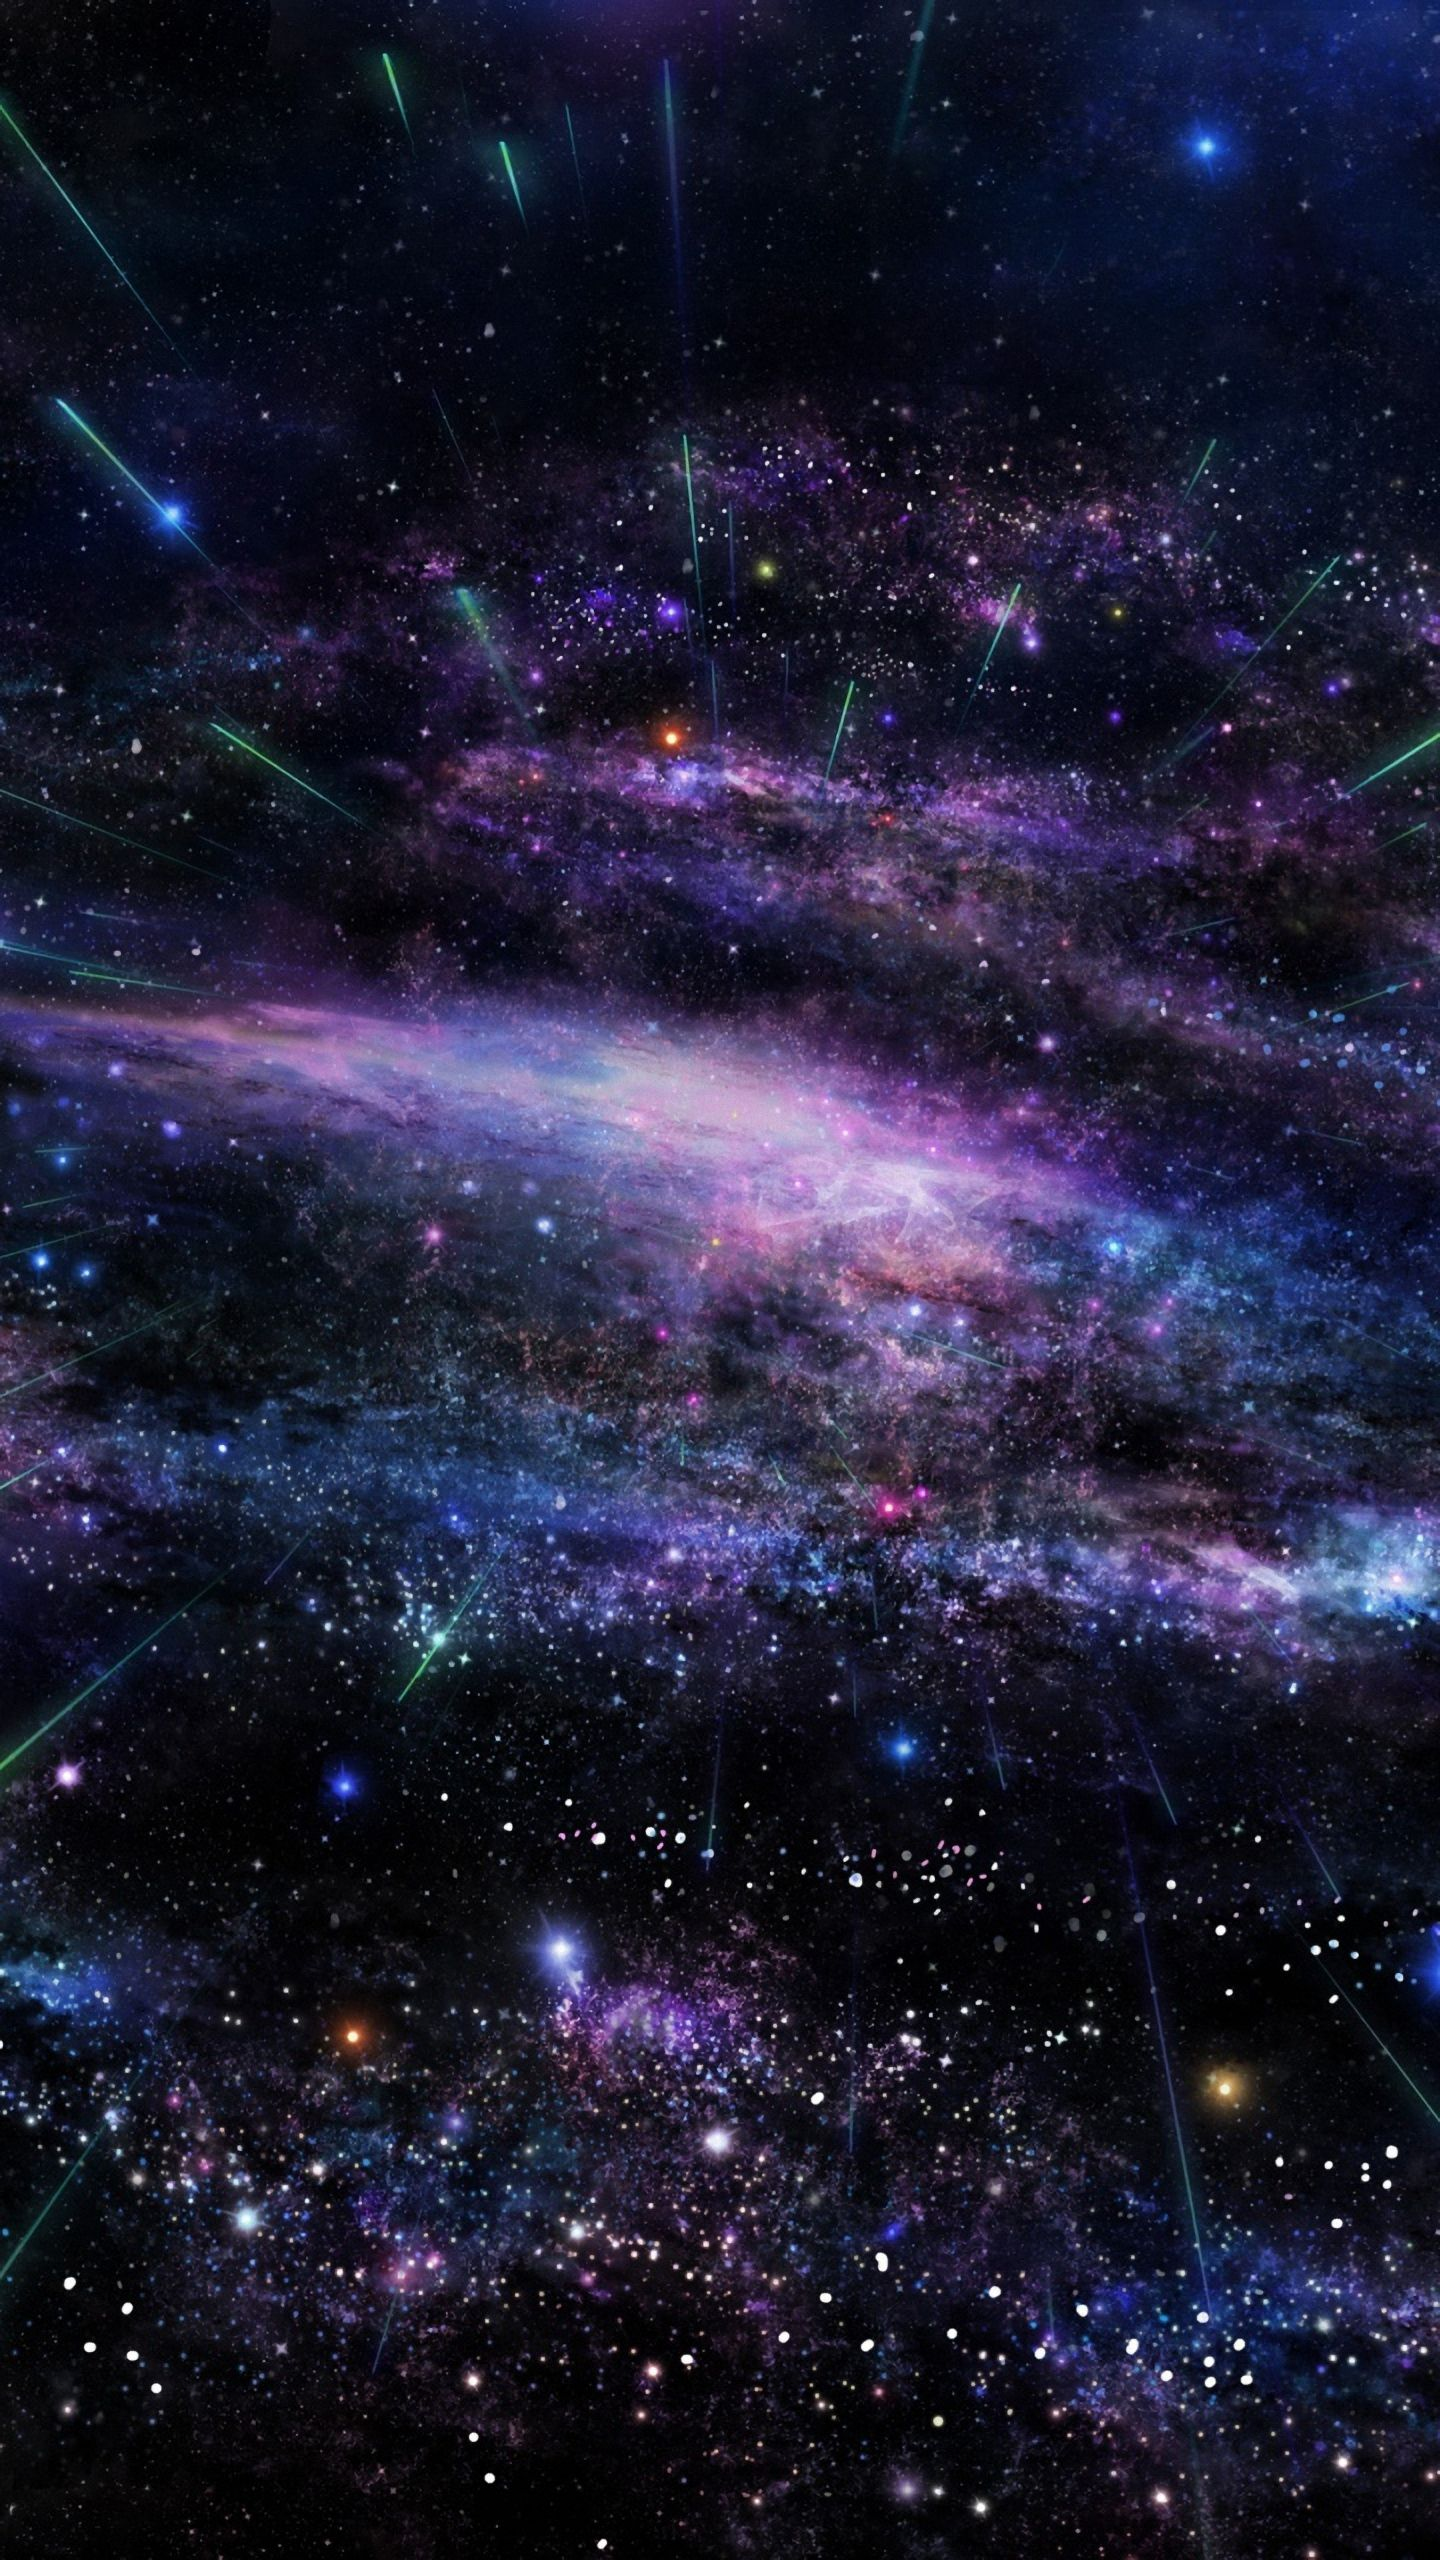 Galaxy Wallpaper Iphone 8 Plus , HD Wallpaper & Backgrounds